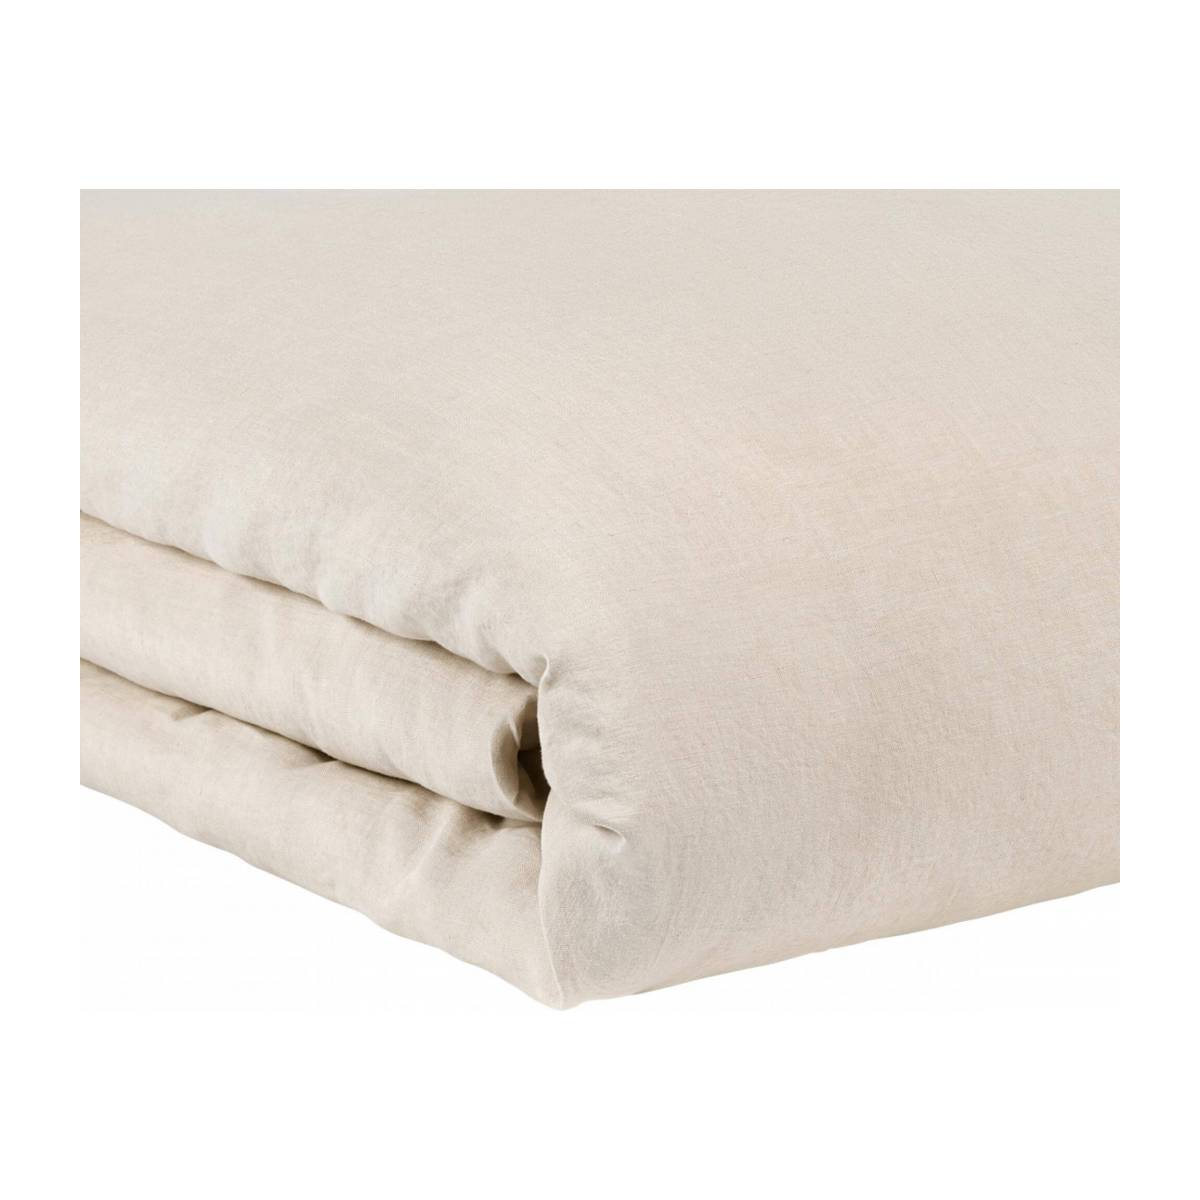 Duvet cover made of flax 240x220cm, natural n°2